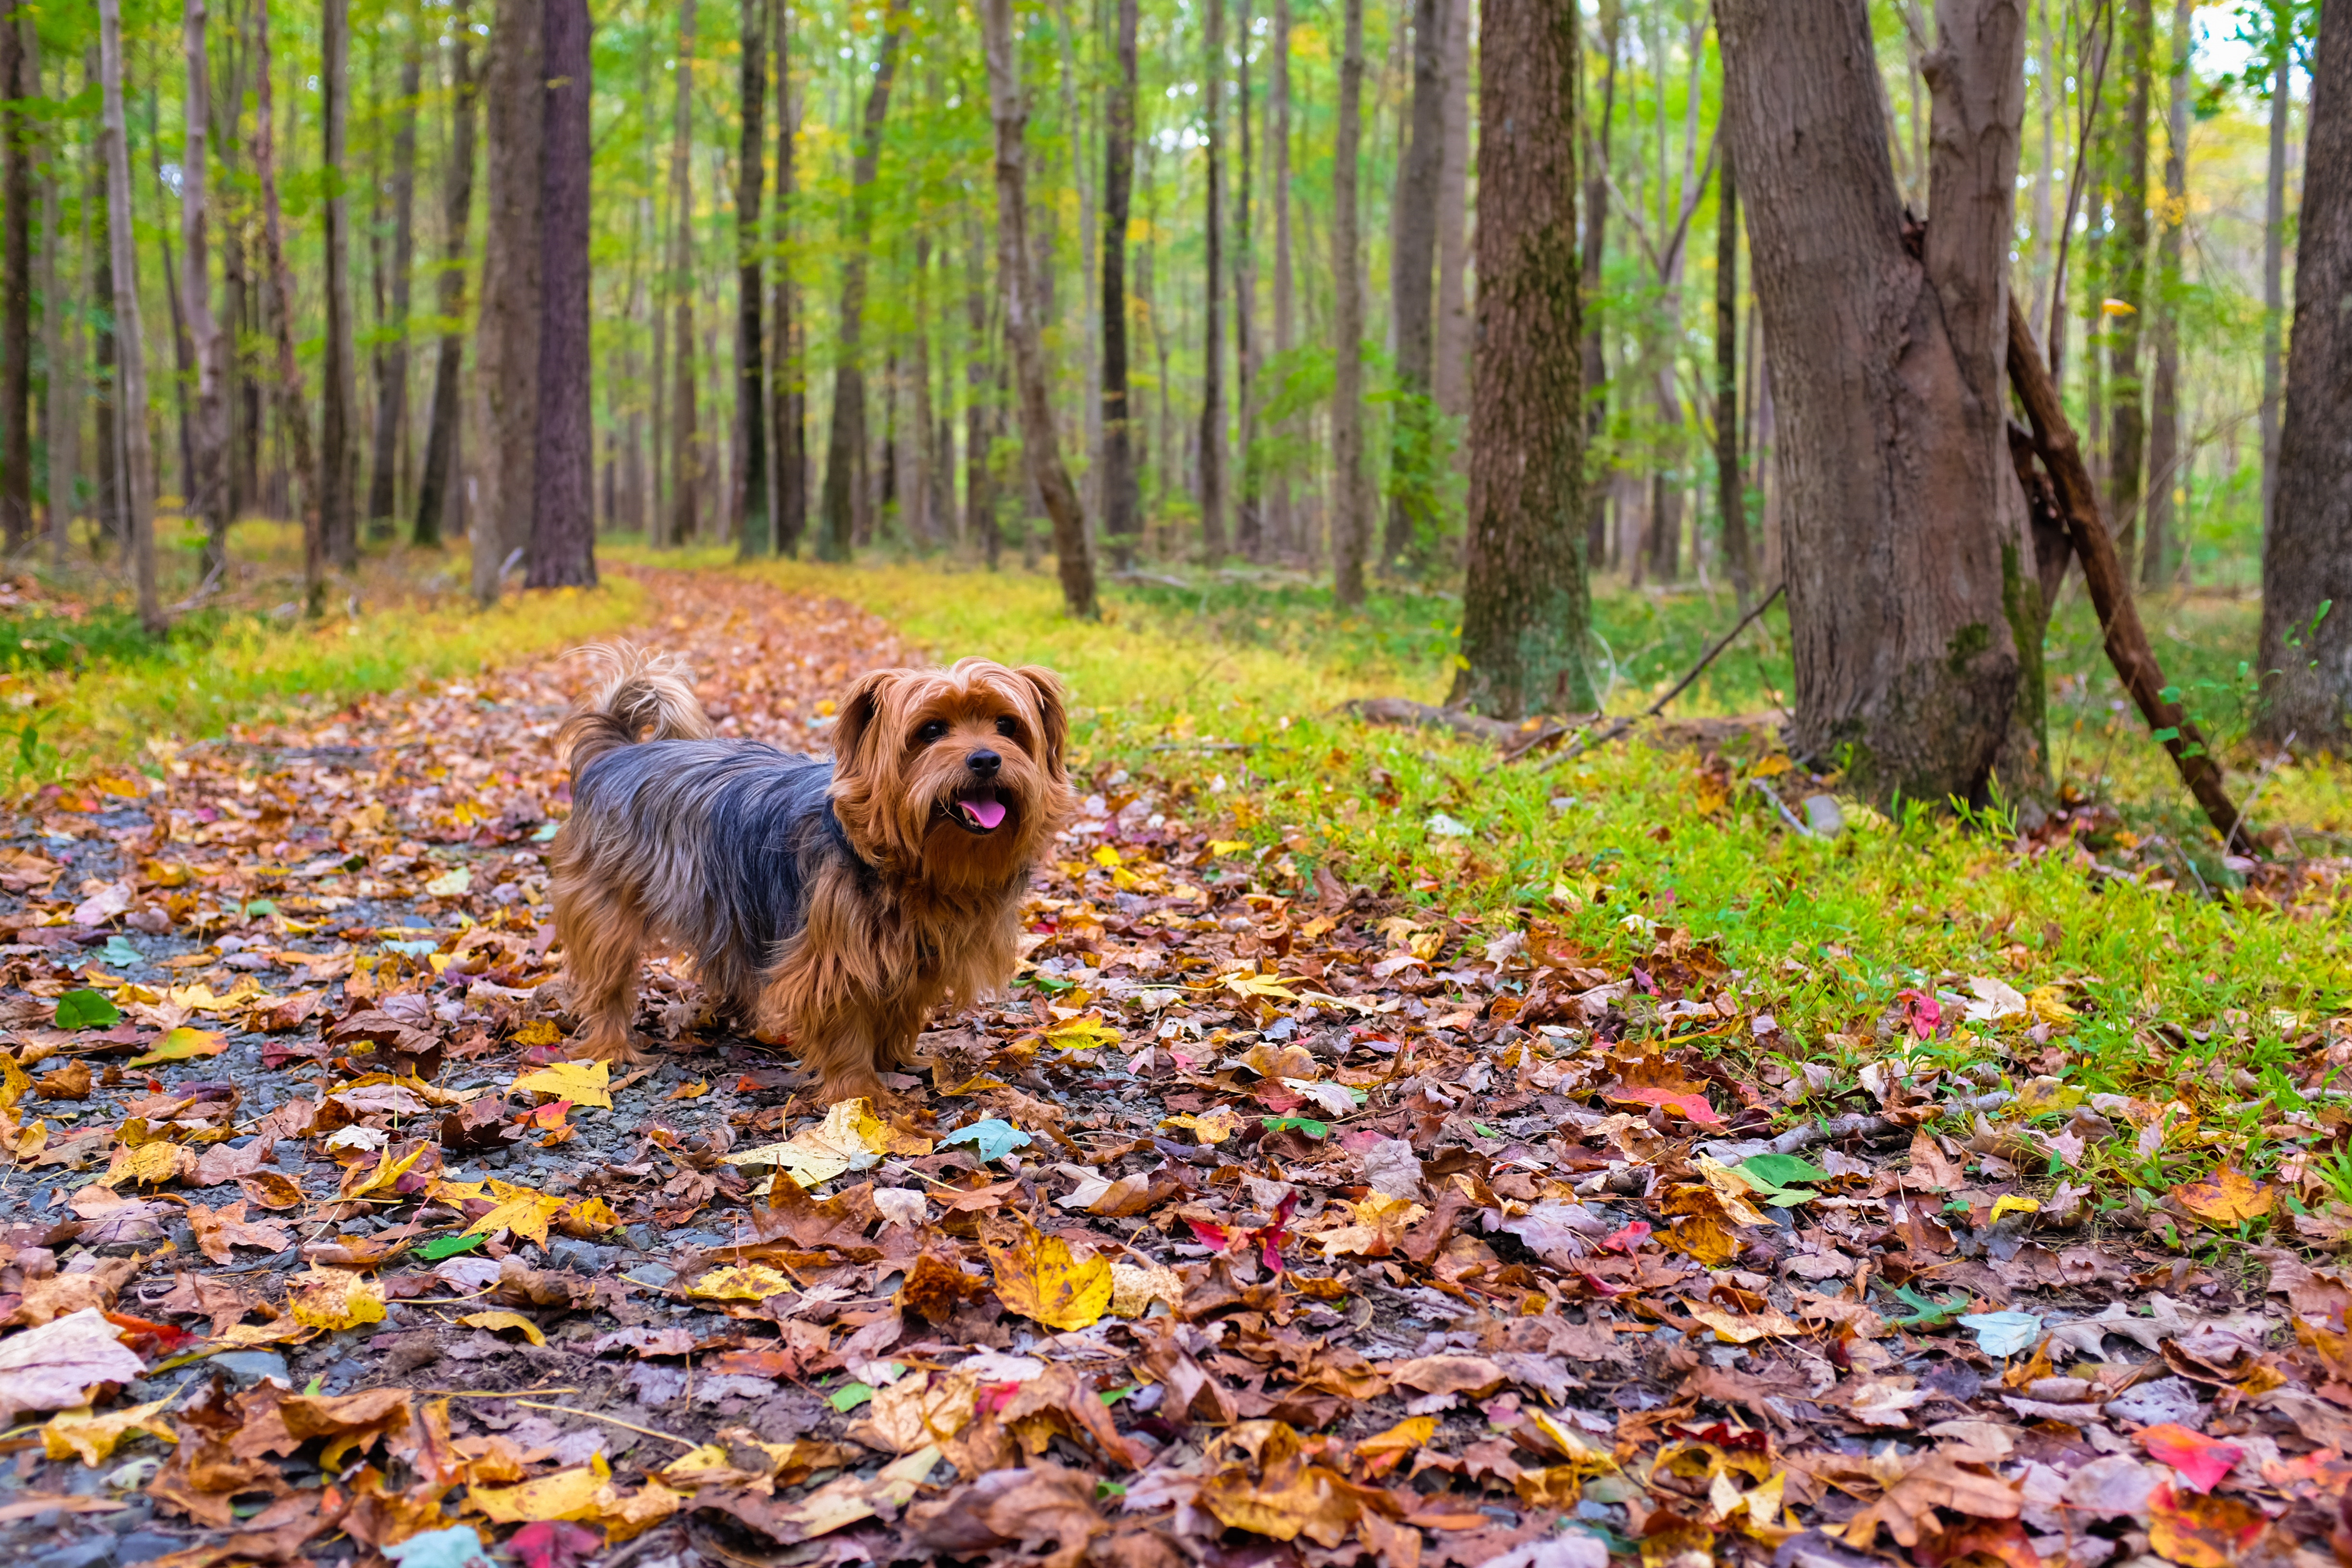 156692 download wallpaper Animals, Dog, Autumn, Park, Stroll screensavers and pictures for free